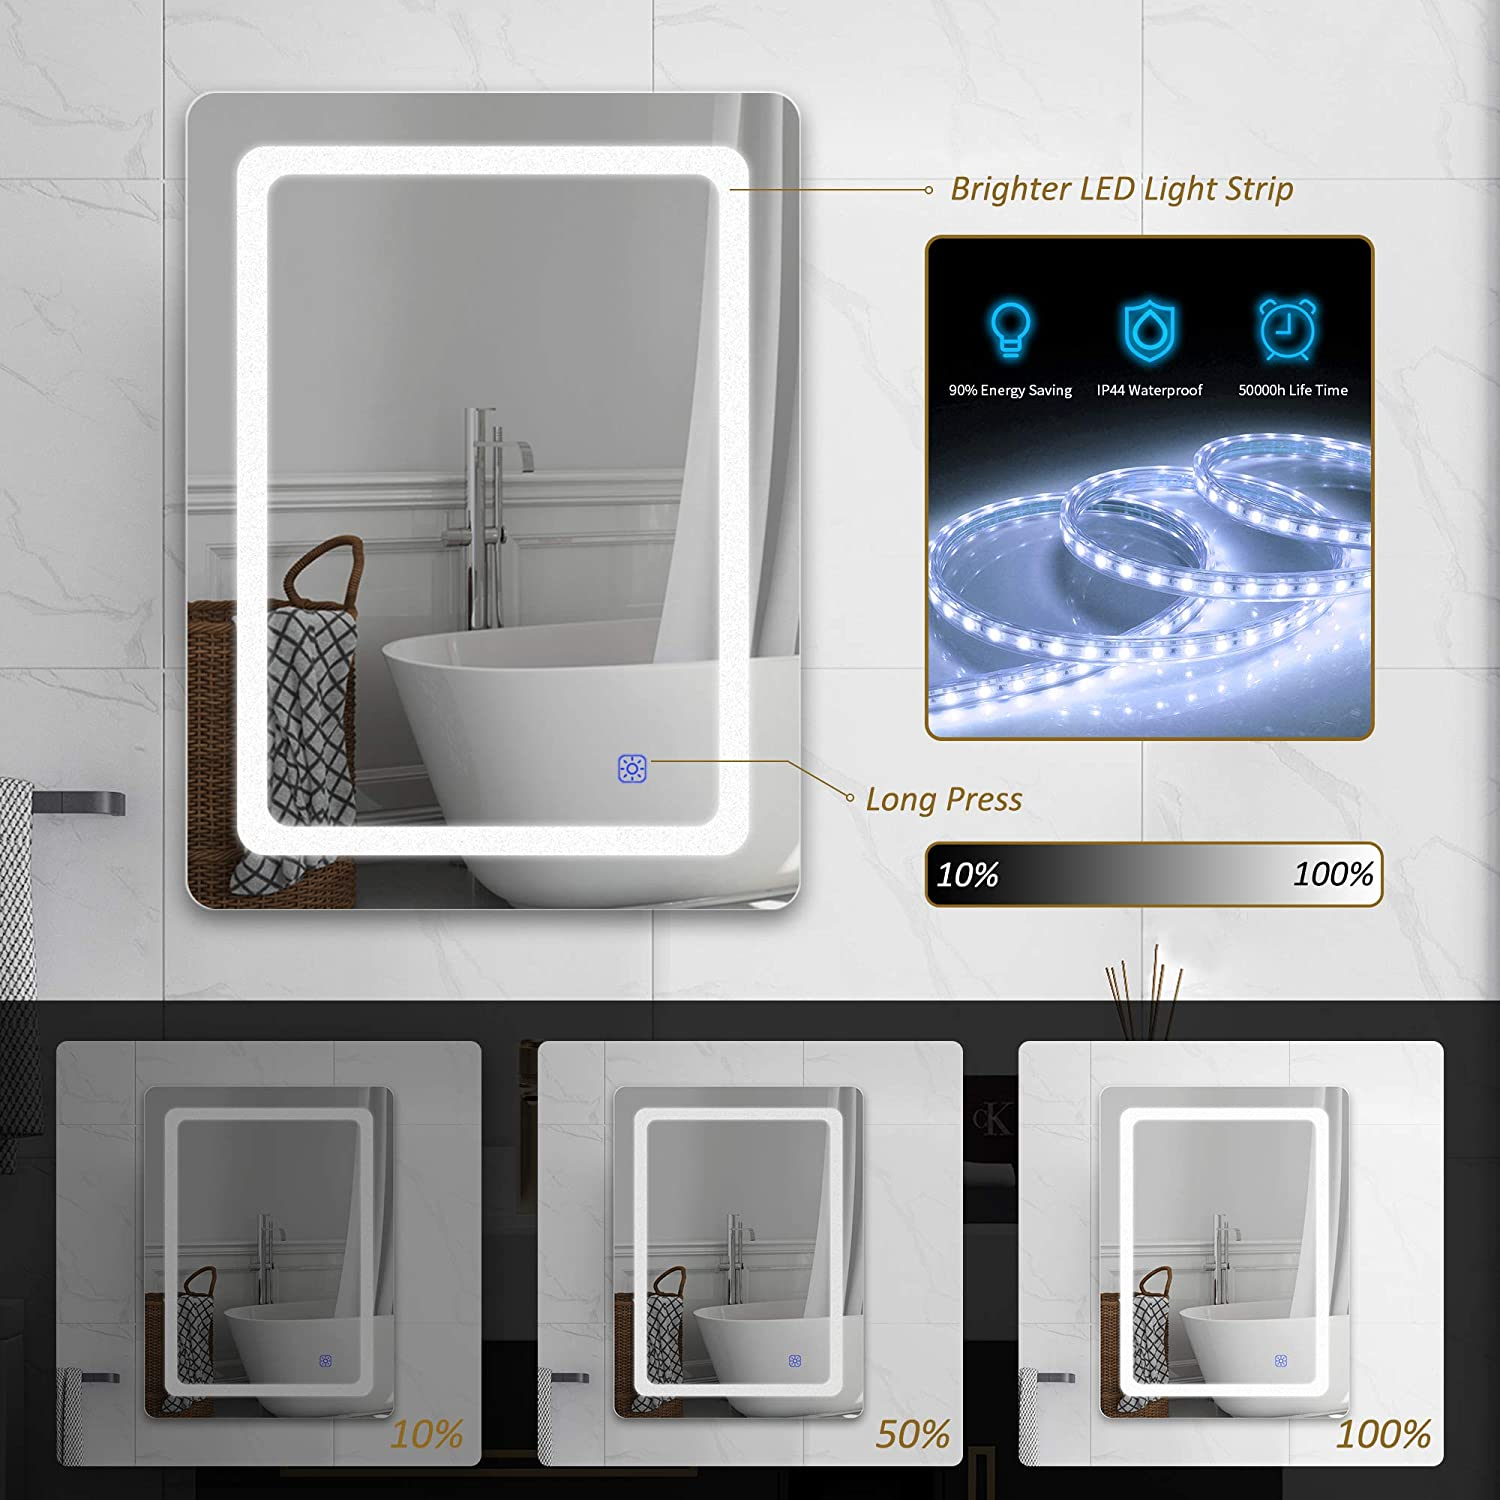 LED Lighted Bathroom Mirror Wall Mounted with Touch Switch Control Dutsekk 24 x 32 Inch LED Vanity Bathroom Mirror Dimmable IP44 Waterproof Horizontal//Vertiacl 3 Light Modes for Makeup